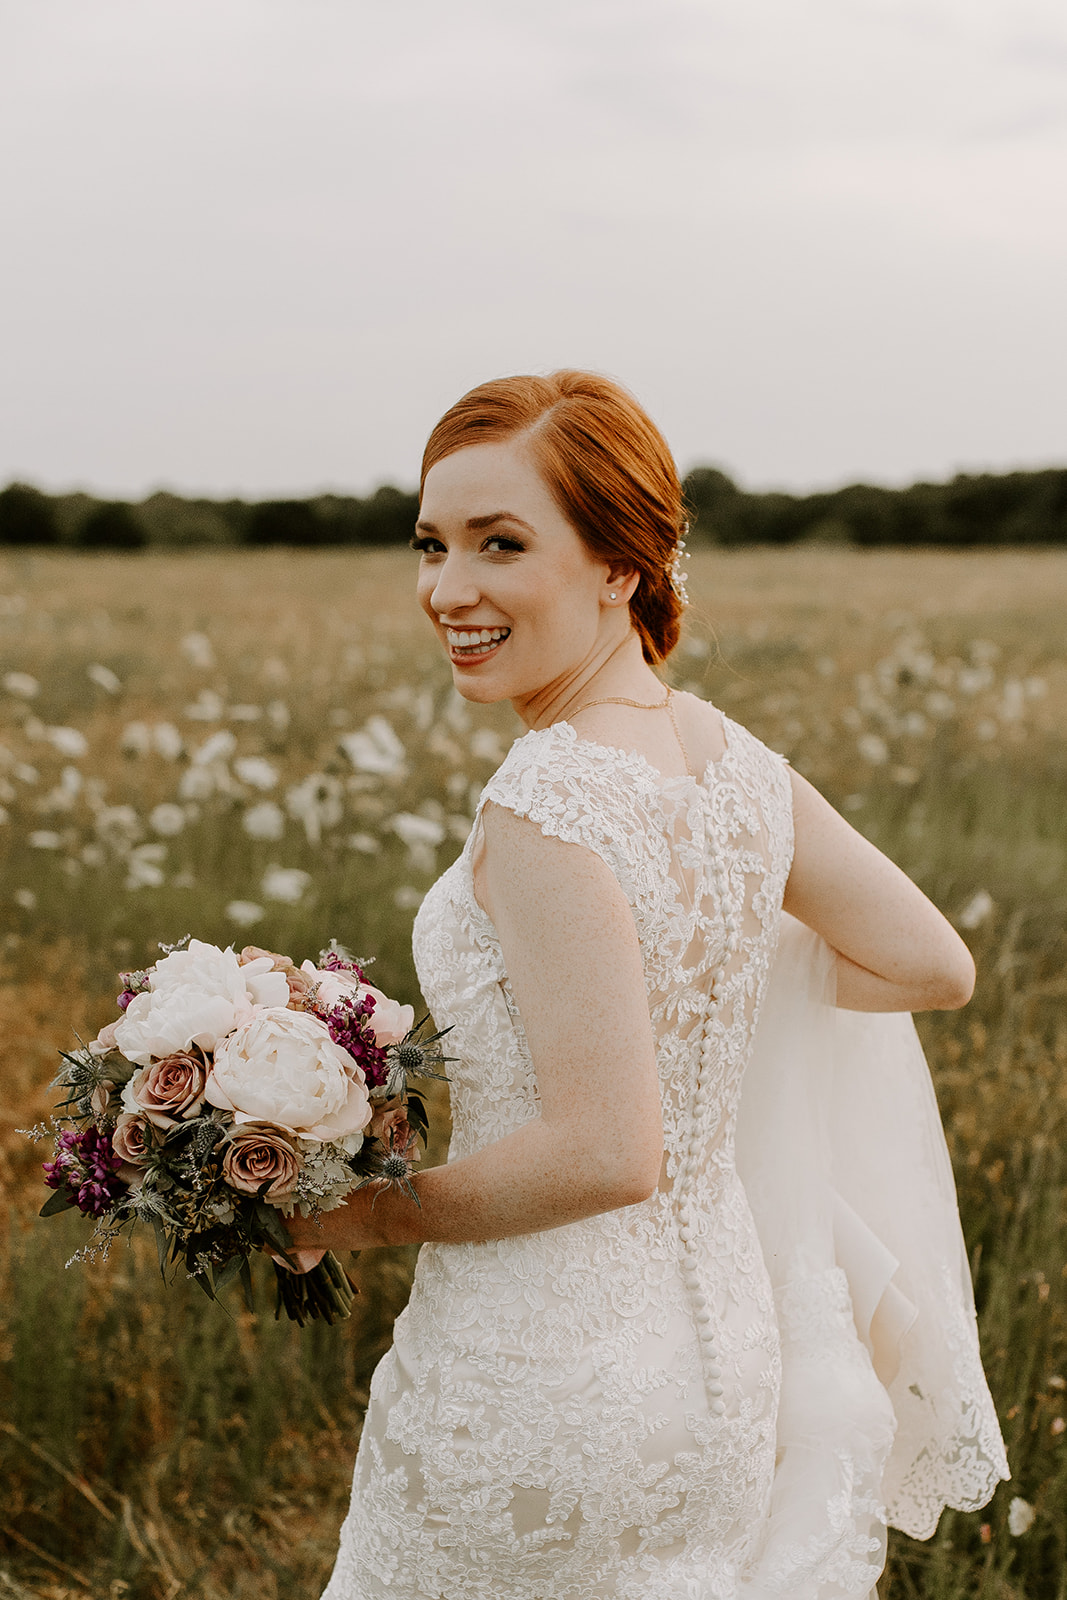 Zoe S Bridal Portraits Hello Flawless Artistry